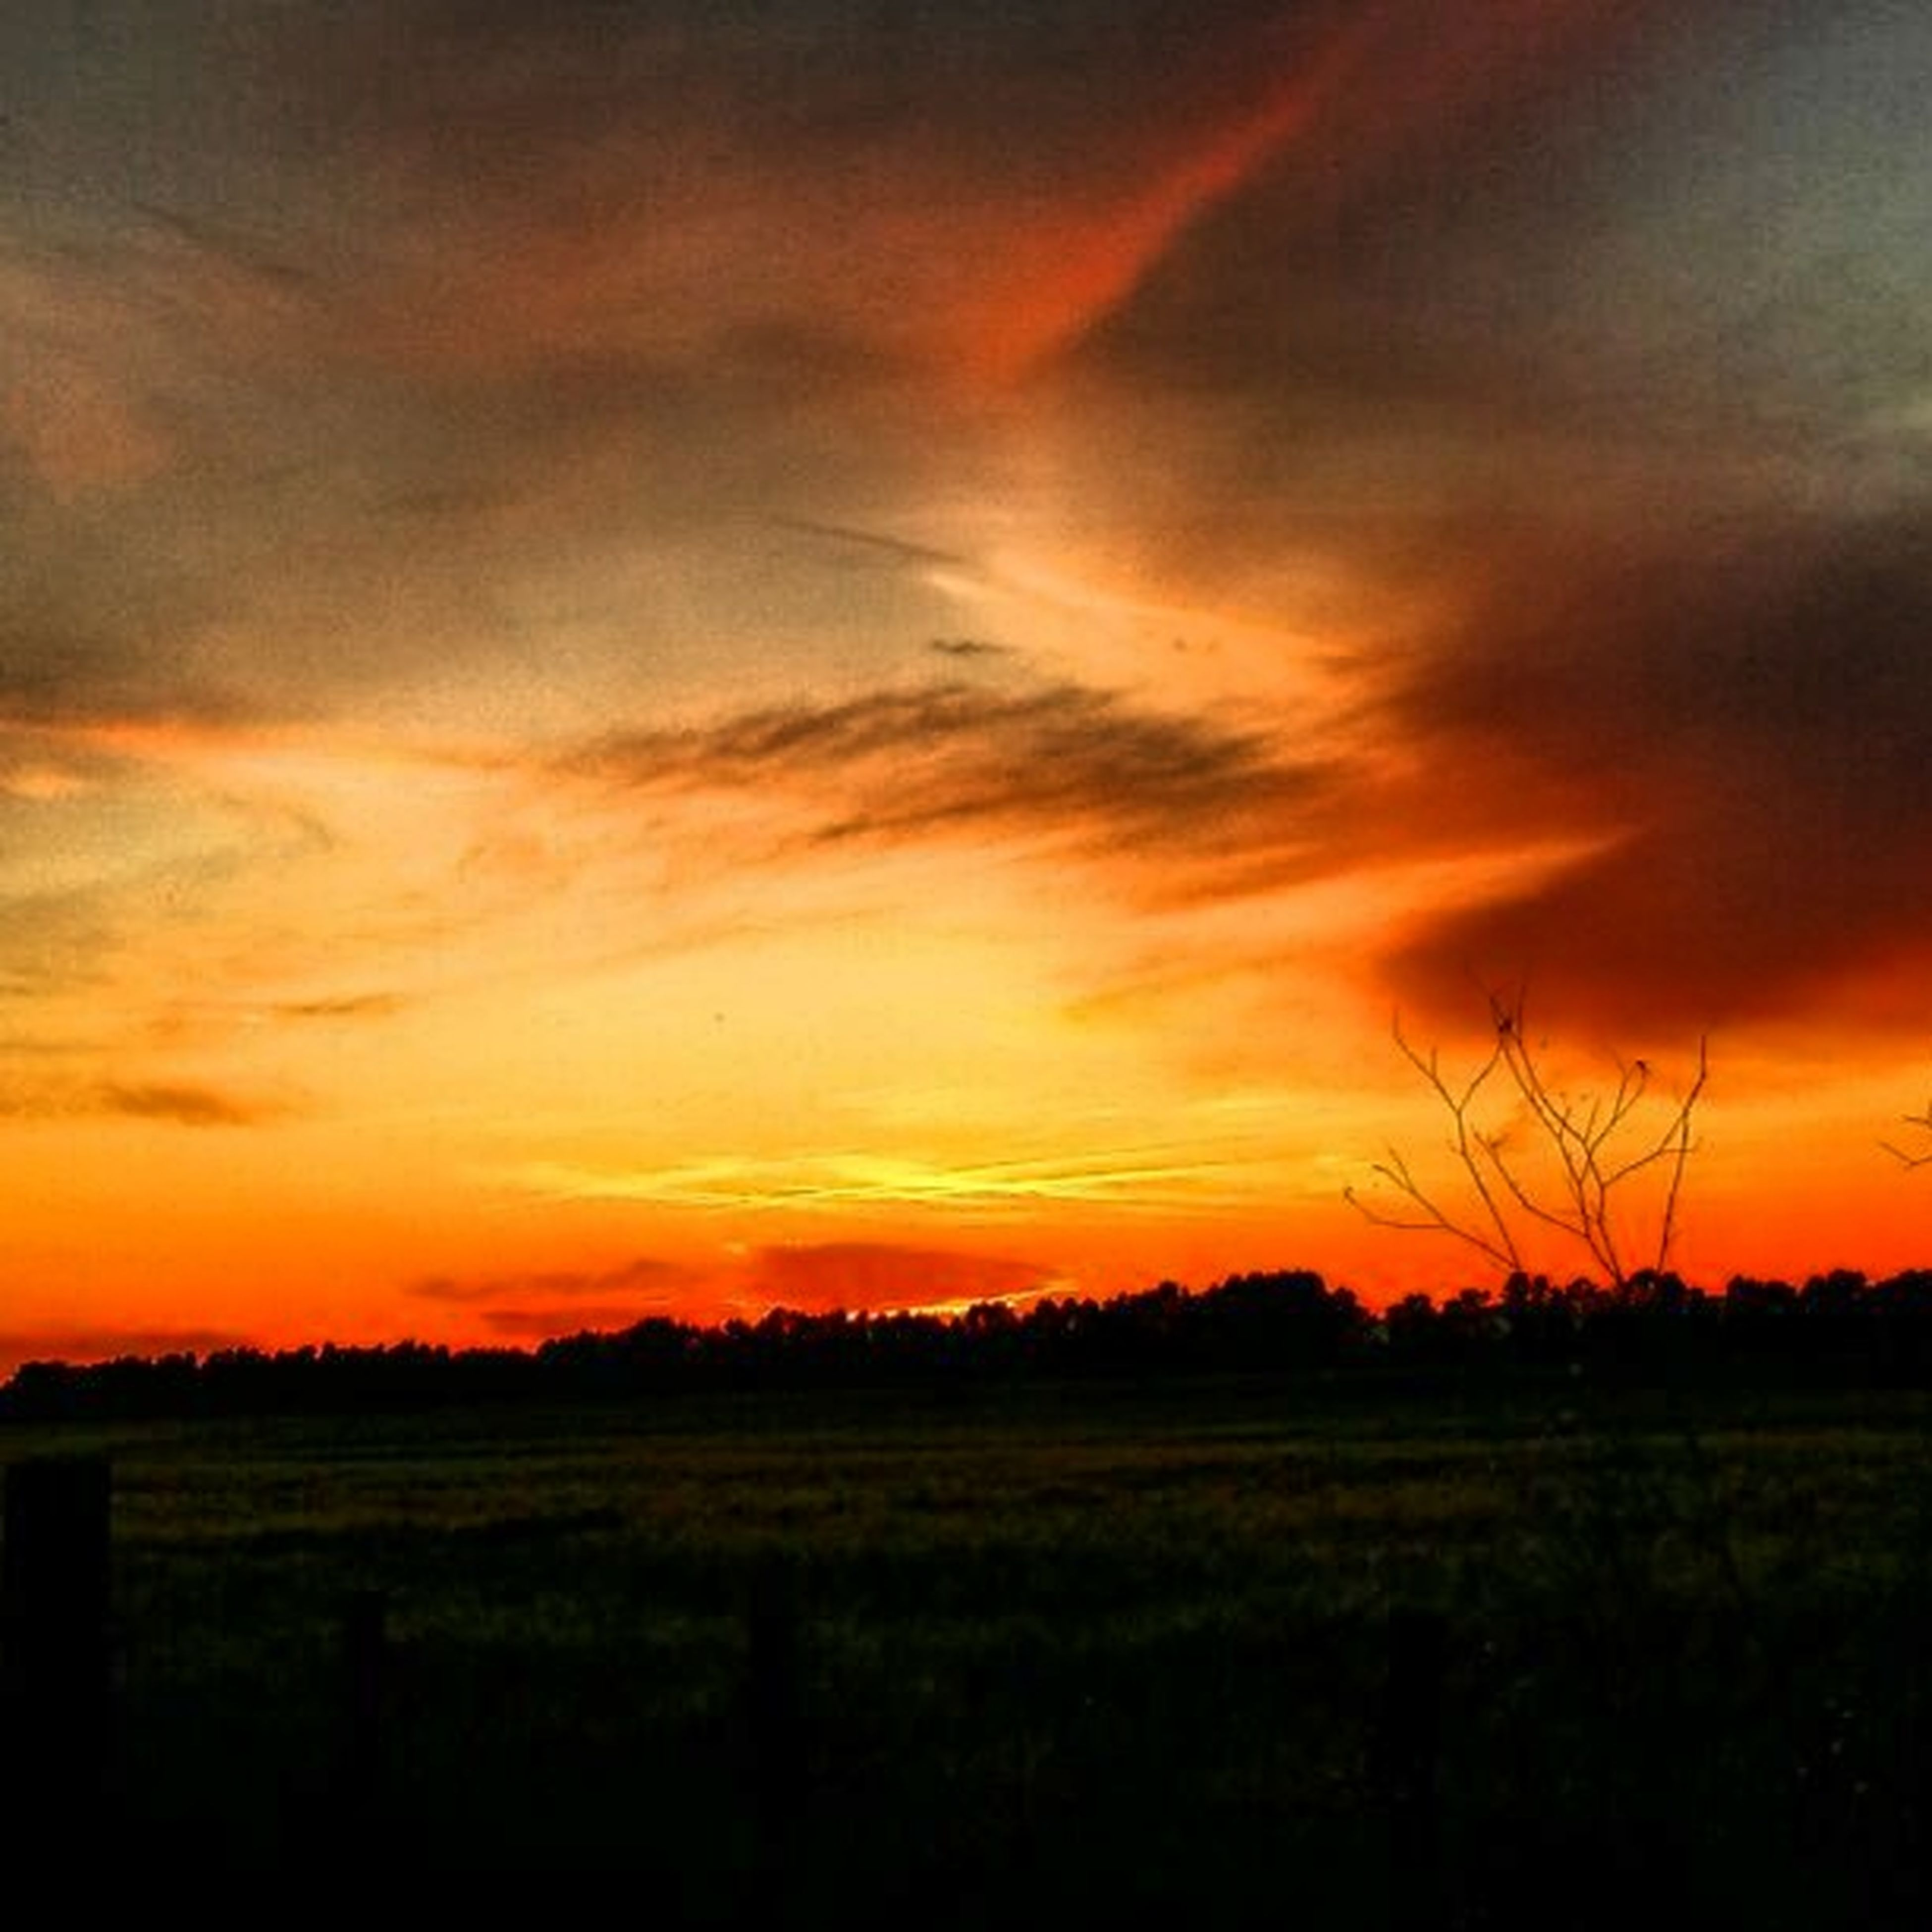 sunset, tranquil scene, scenics, landscape, orange color, tranquility, beauty in nature, sky, field, silhouette, nature, idyllic, cloud - sky, dramatic sky, tree, cloud, growth, grass, cloudy, outdoors